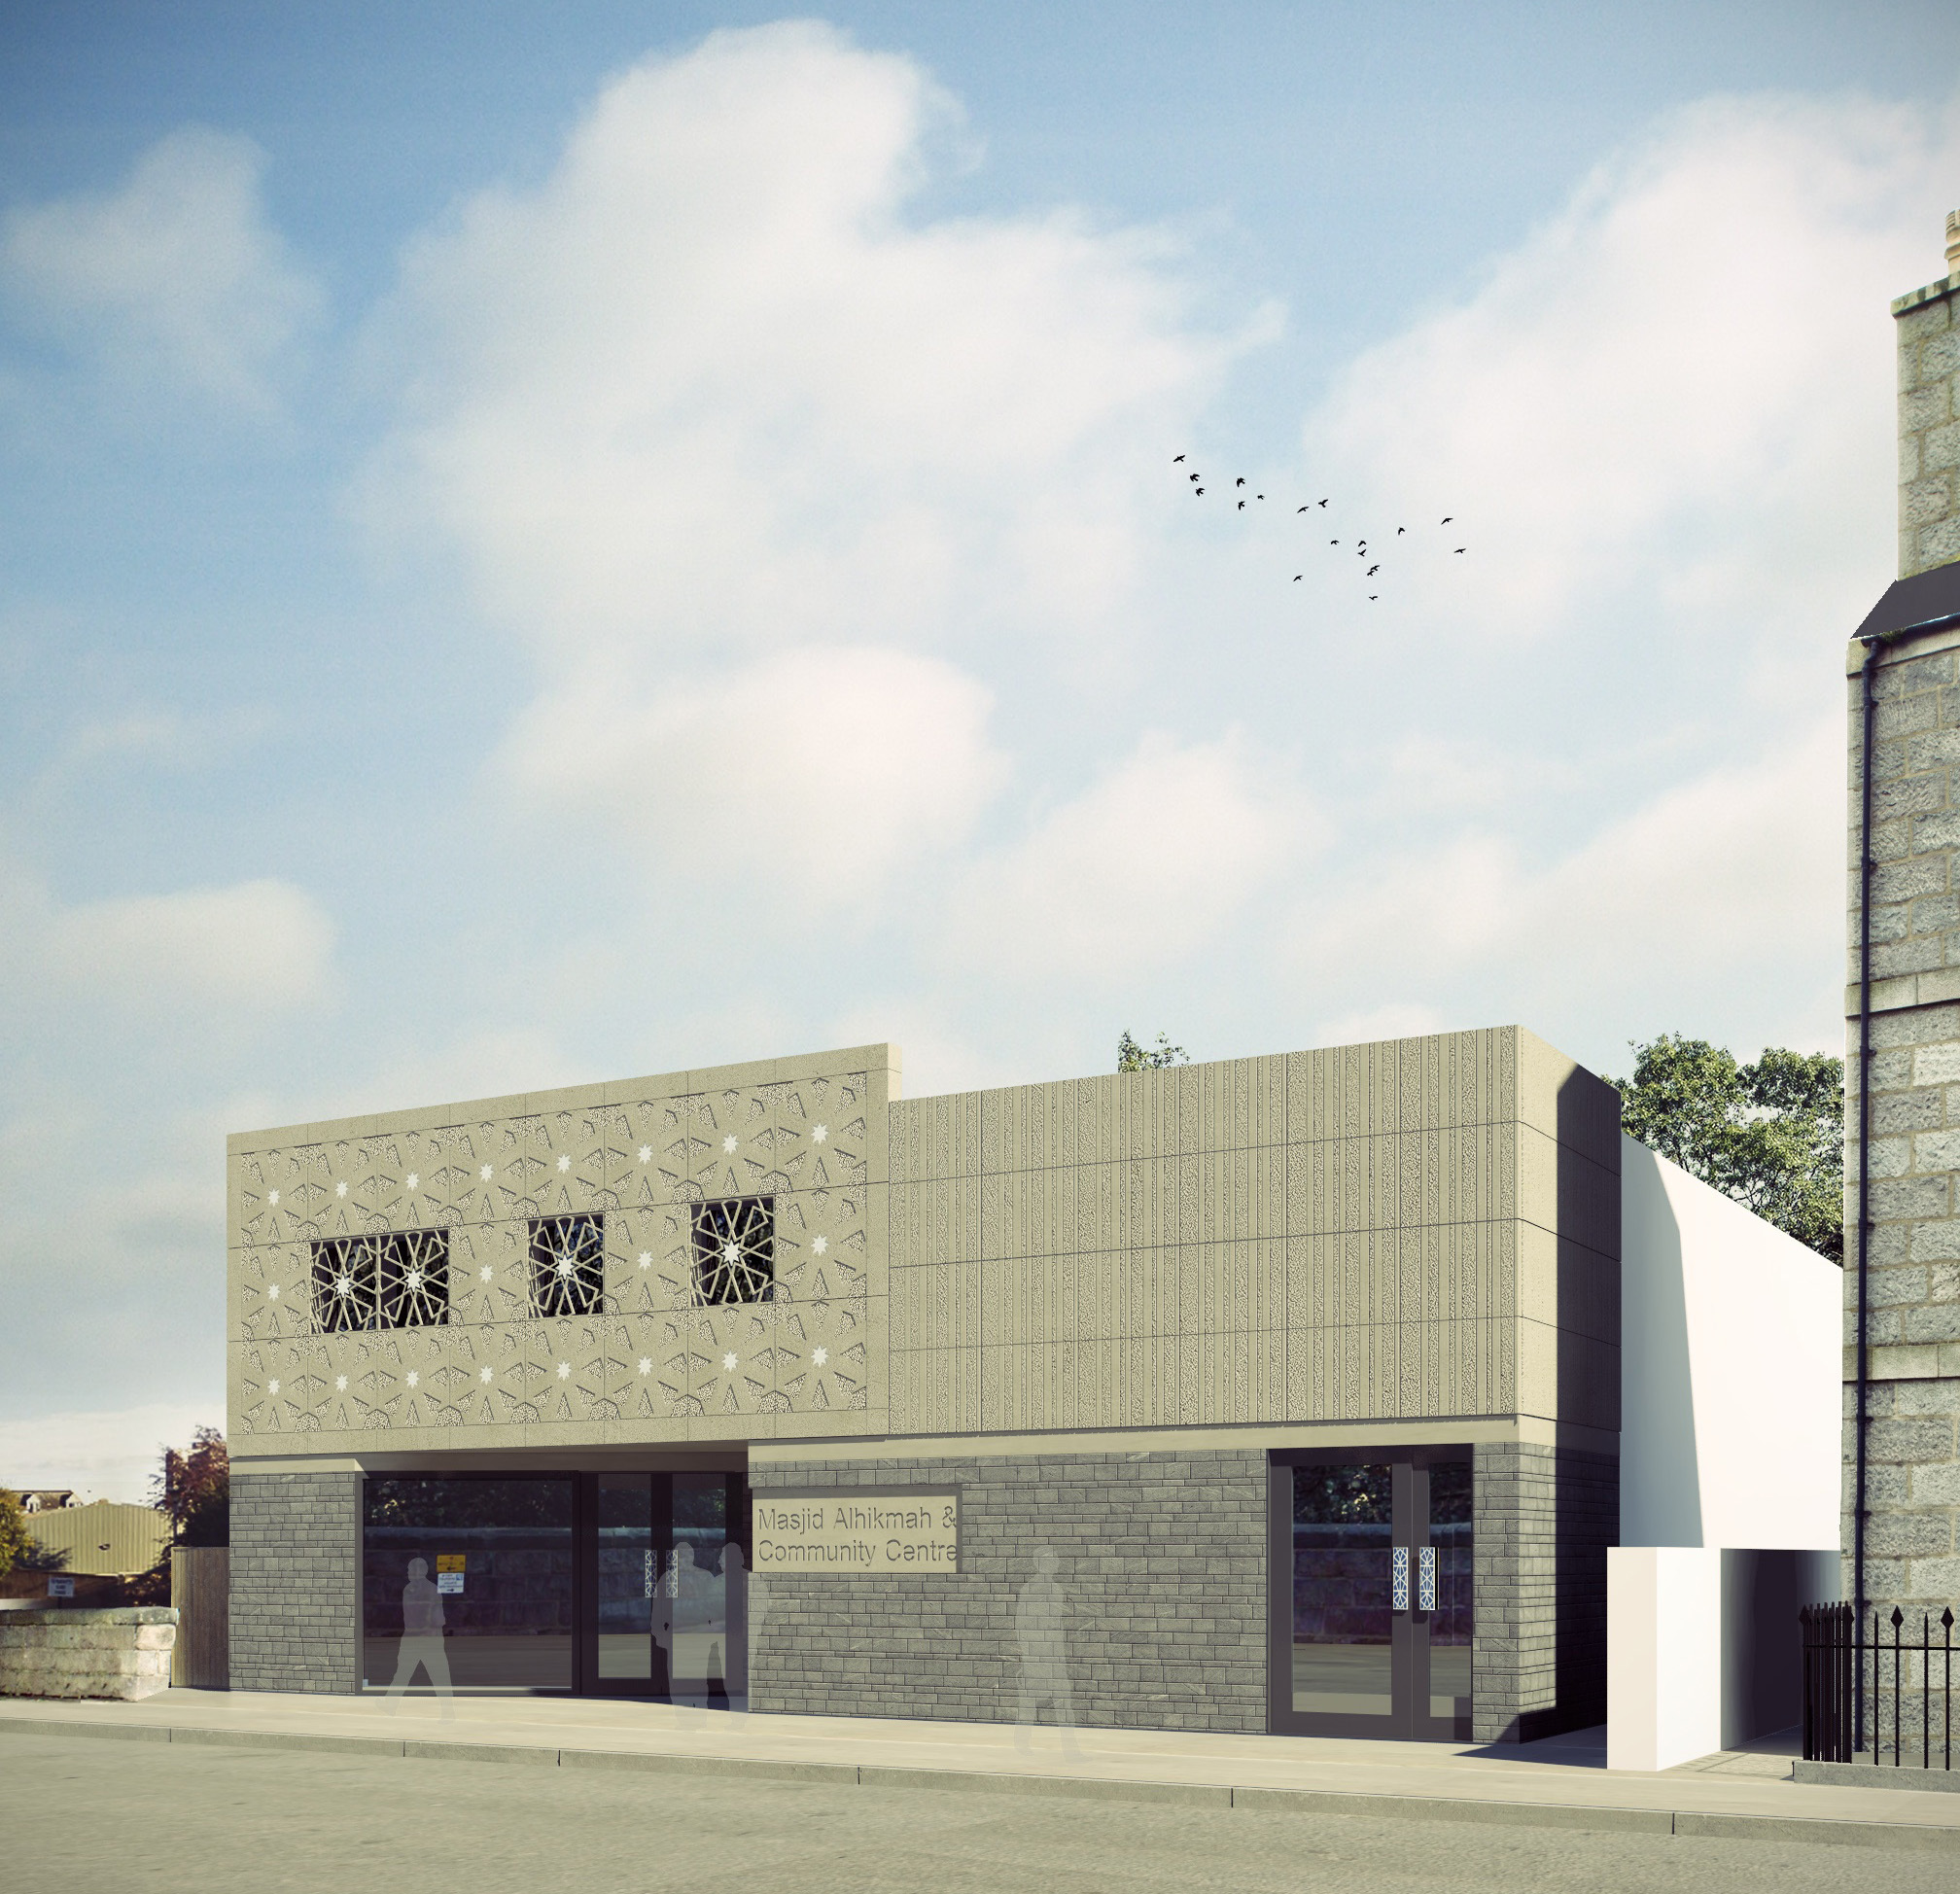 Work on the new Aberdeen mosque will begin in January